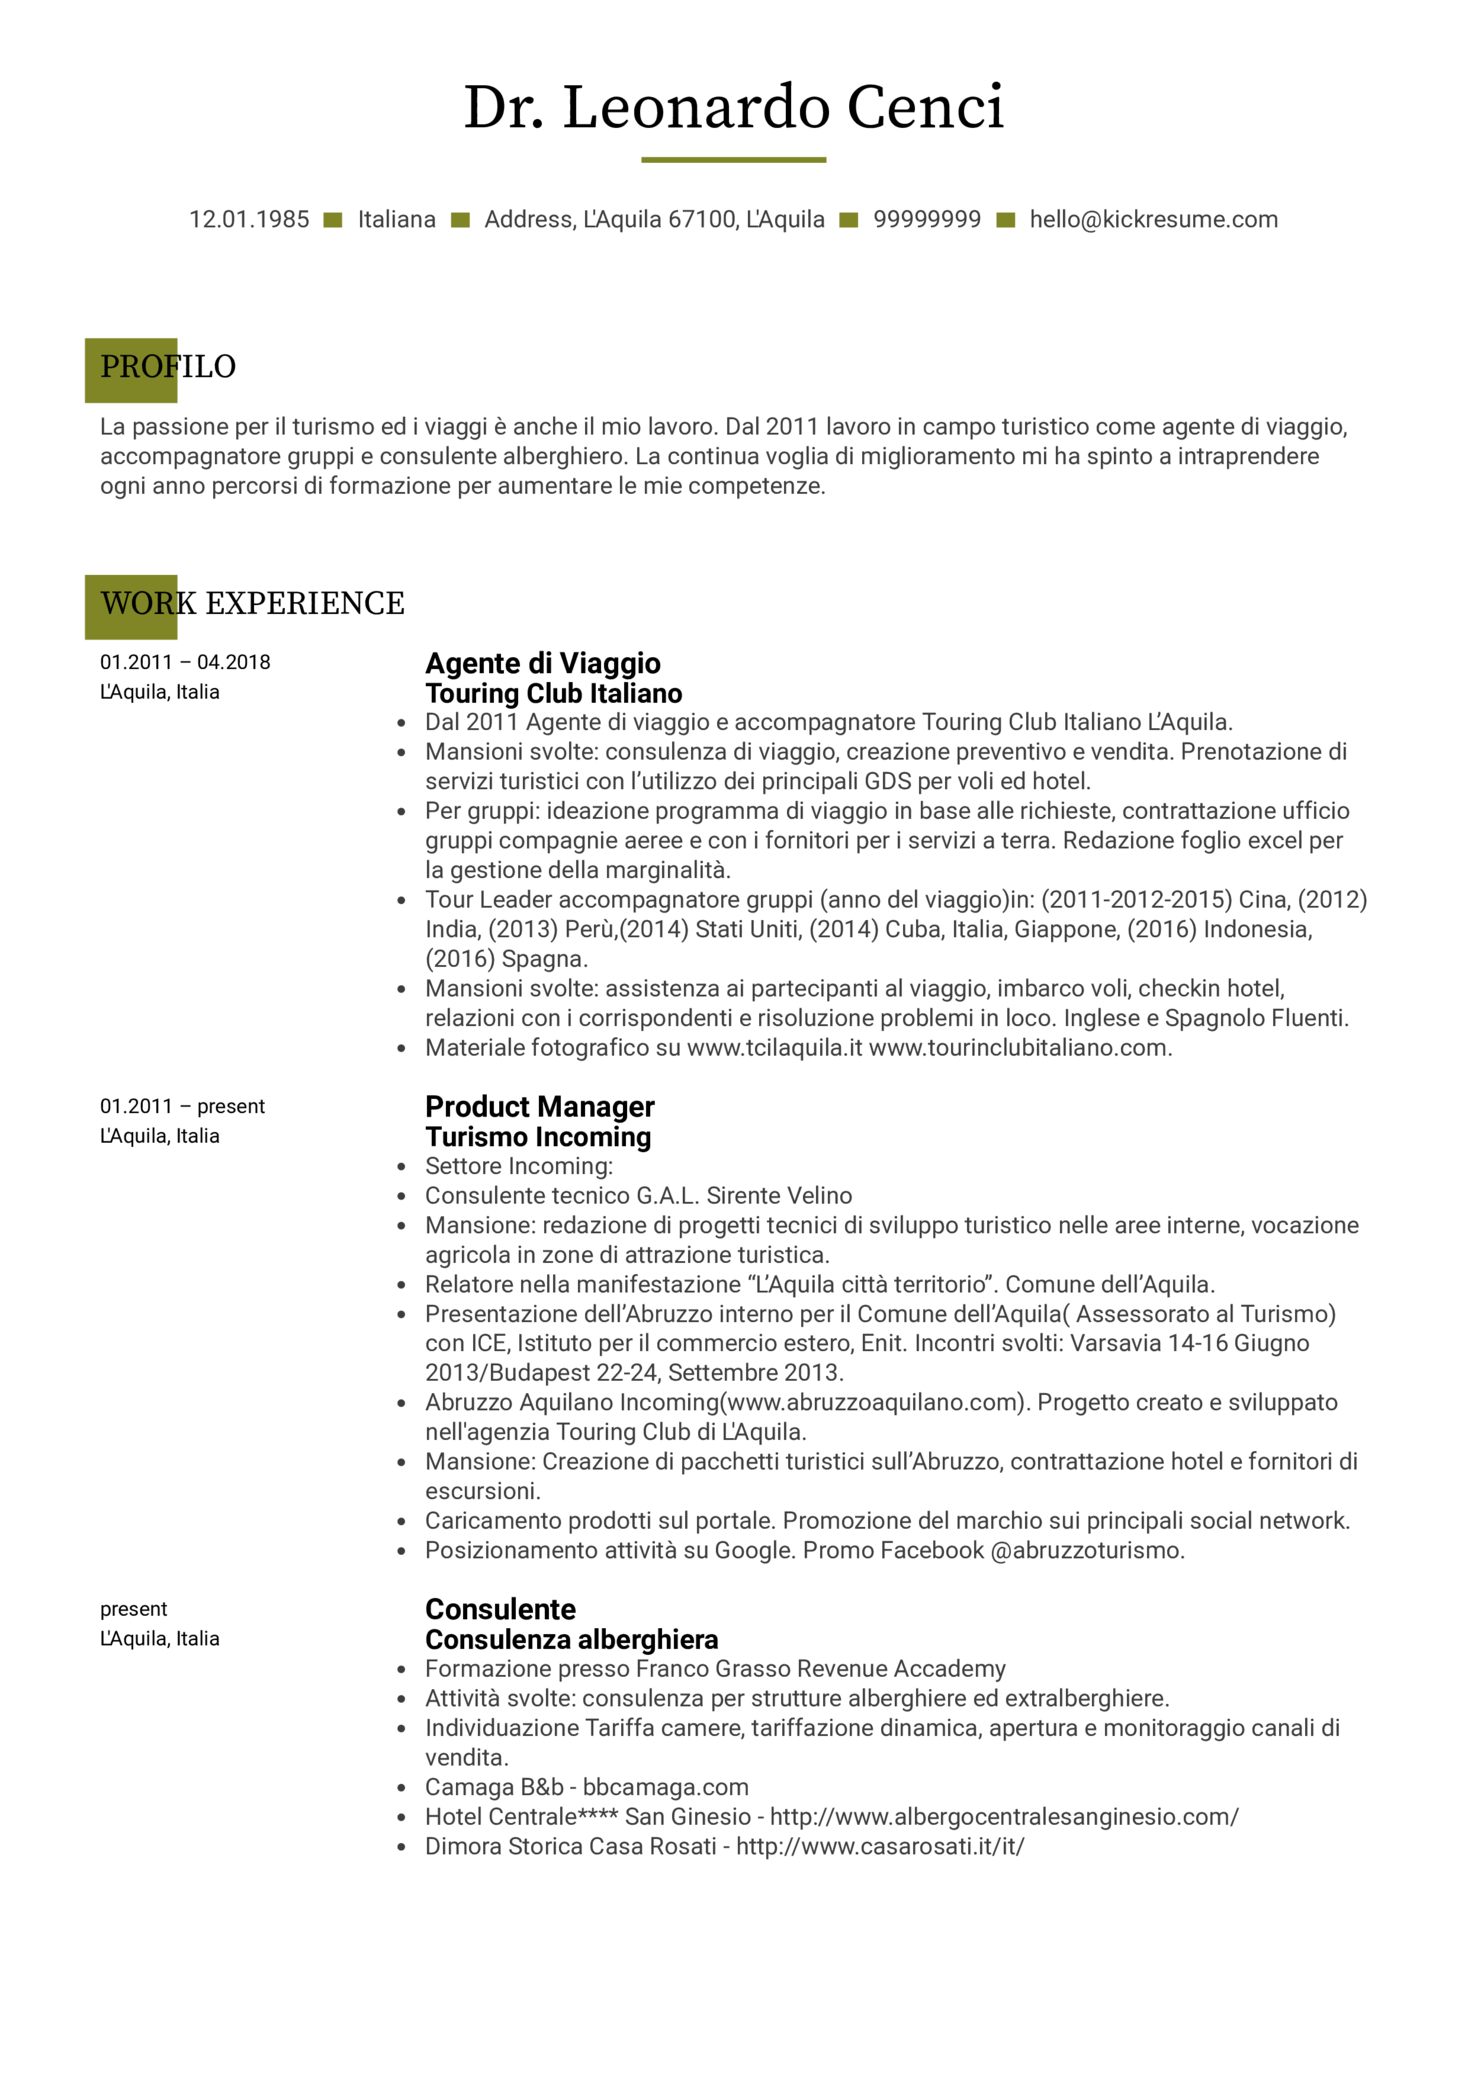 Sales Specialist Resume Example [IT] (Part 1)